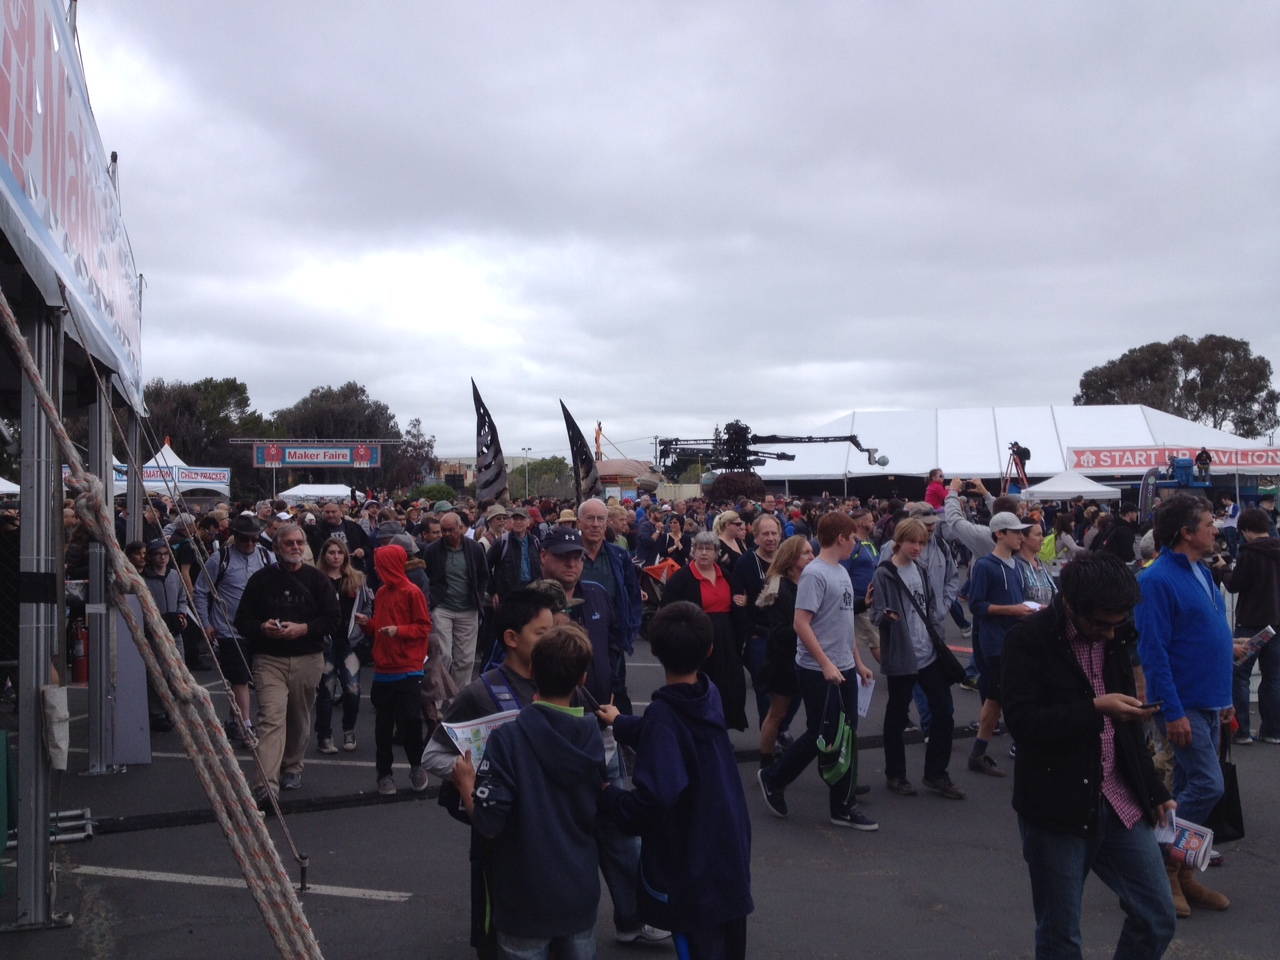 The crowds were a little intimidating at first. Estimates put attendance around 150,000 for the weekend.